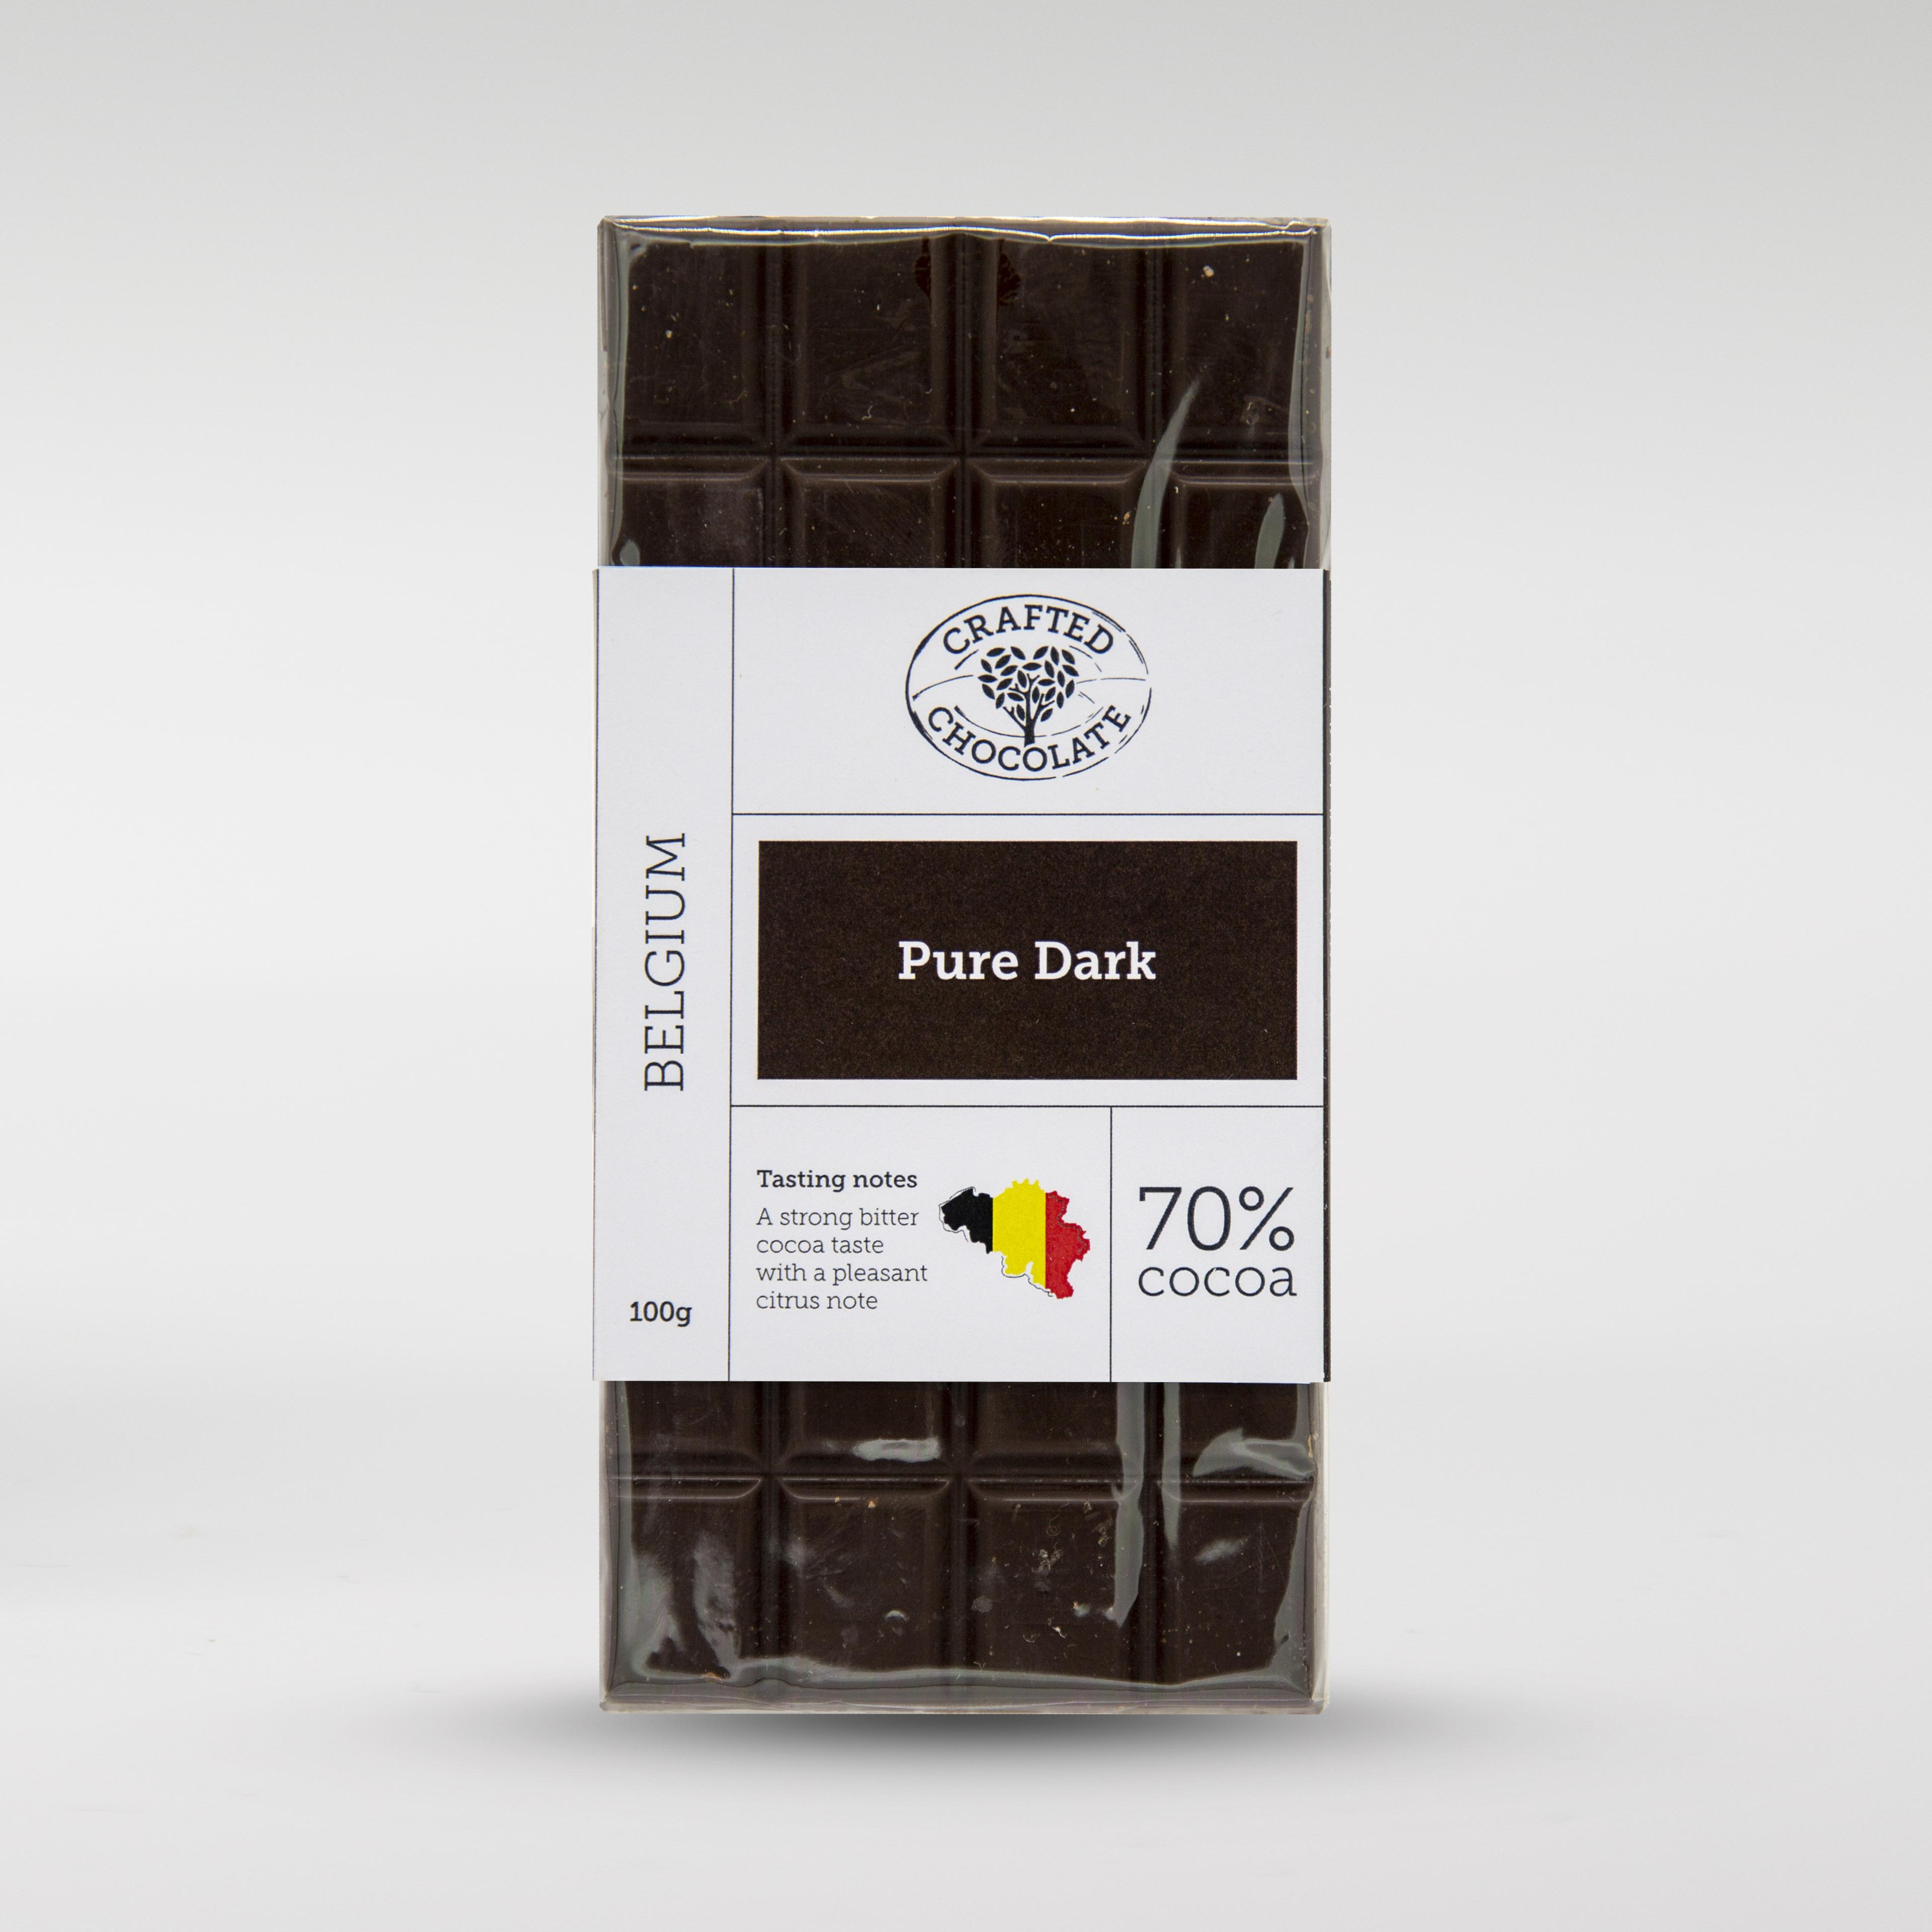 Pure dark chocolate with 70% cocoa.